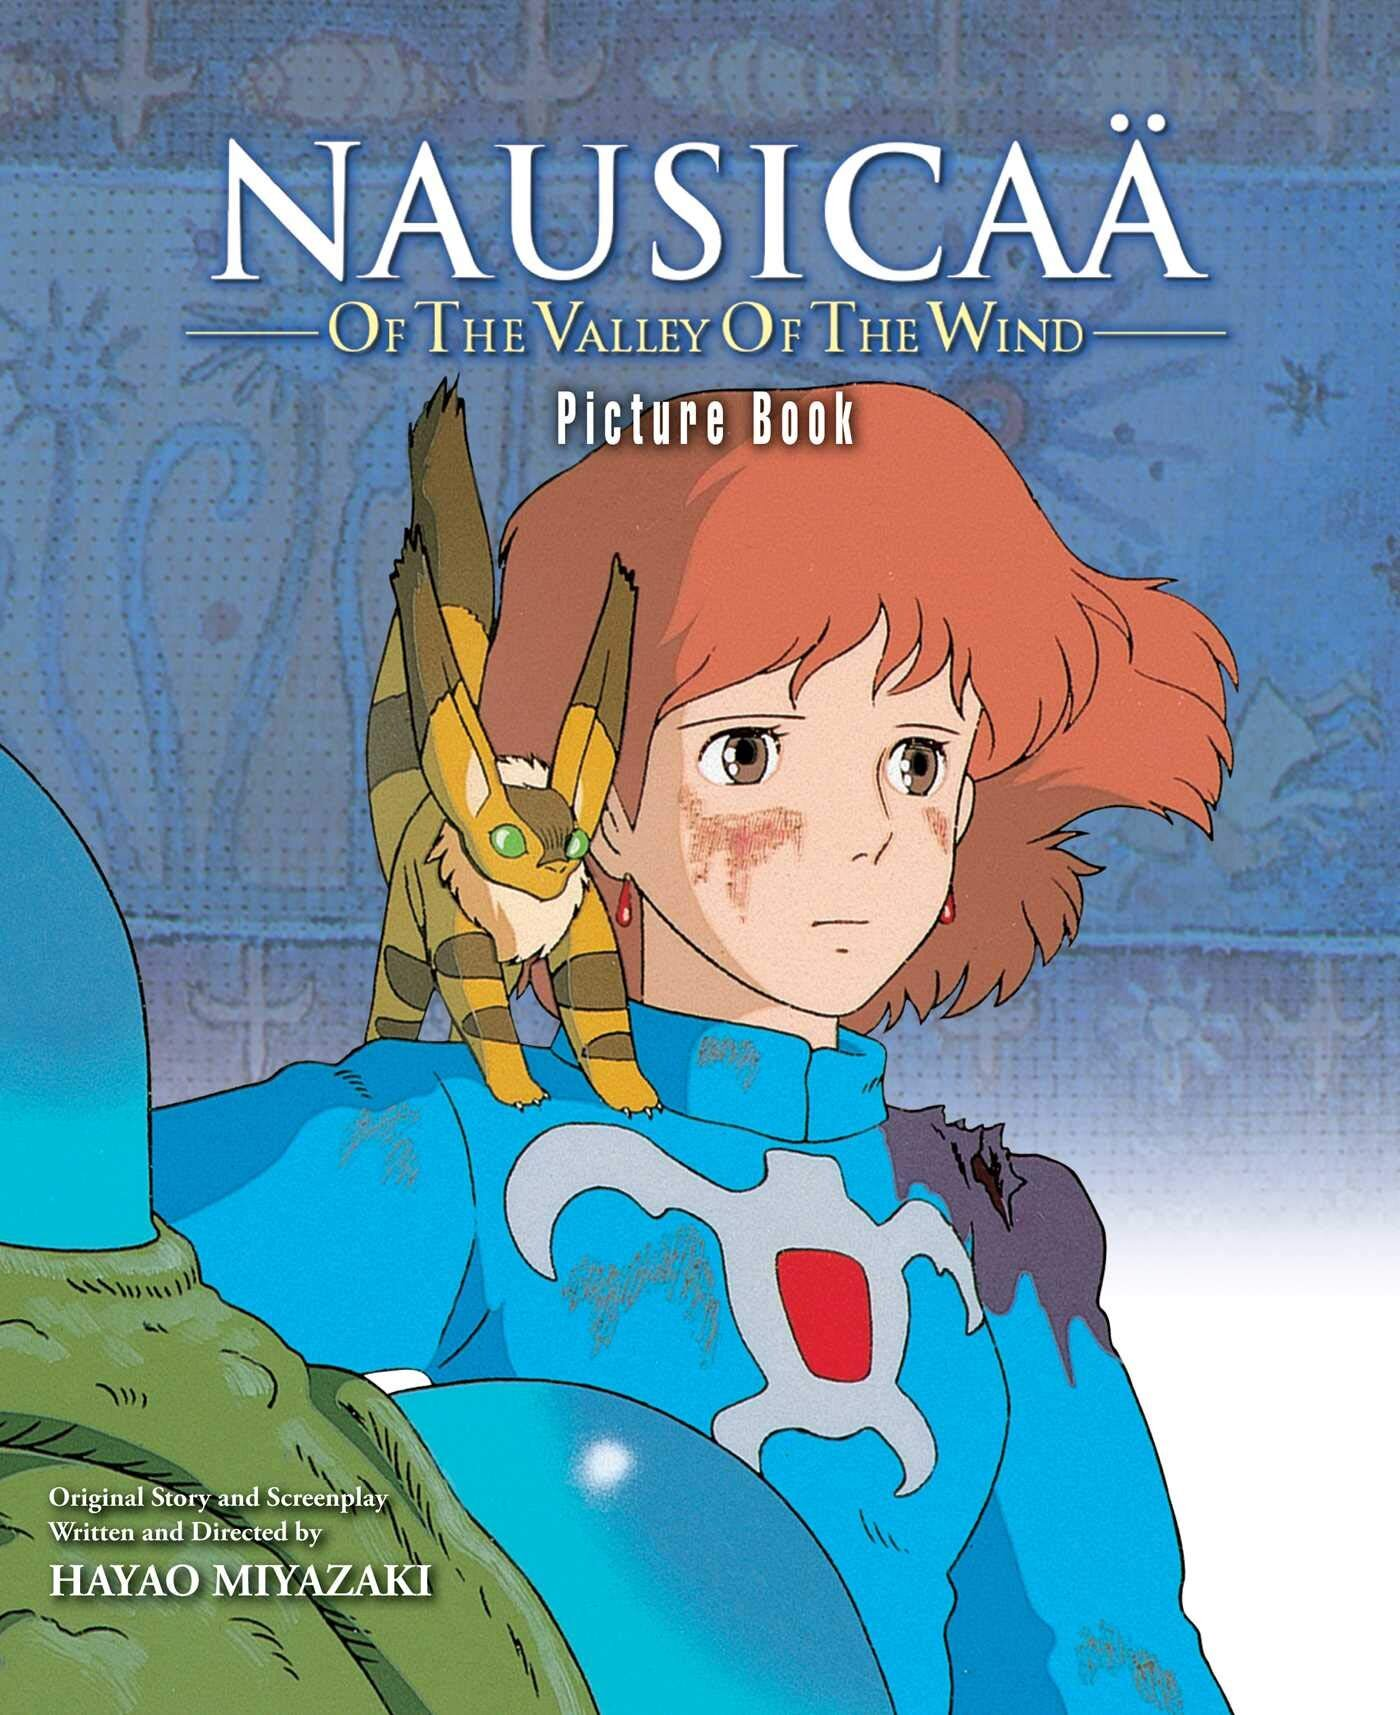 Studio Ghibli Picture Books - Nausicaa of the Valley of the Wind.jpg